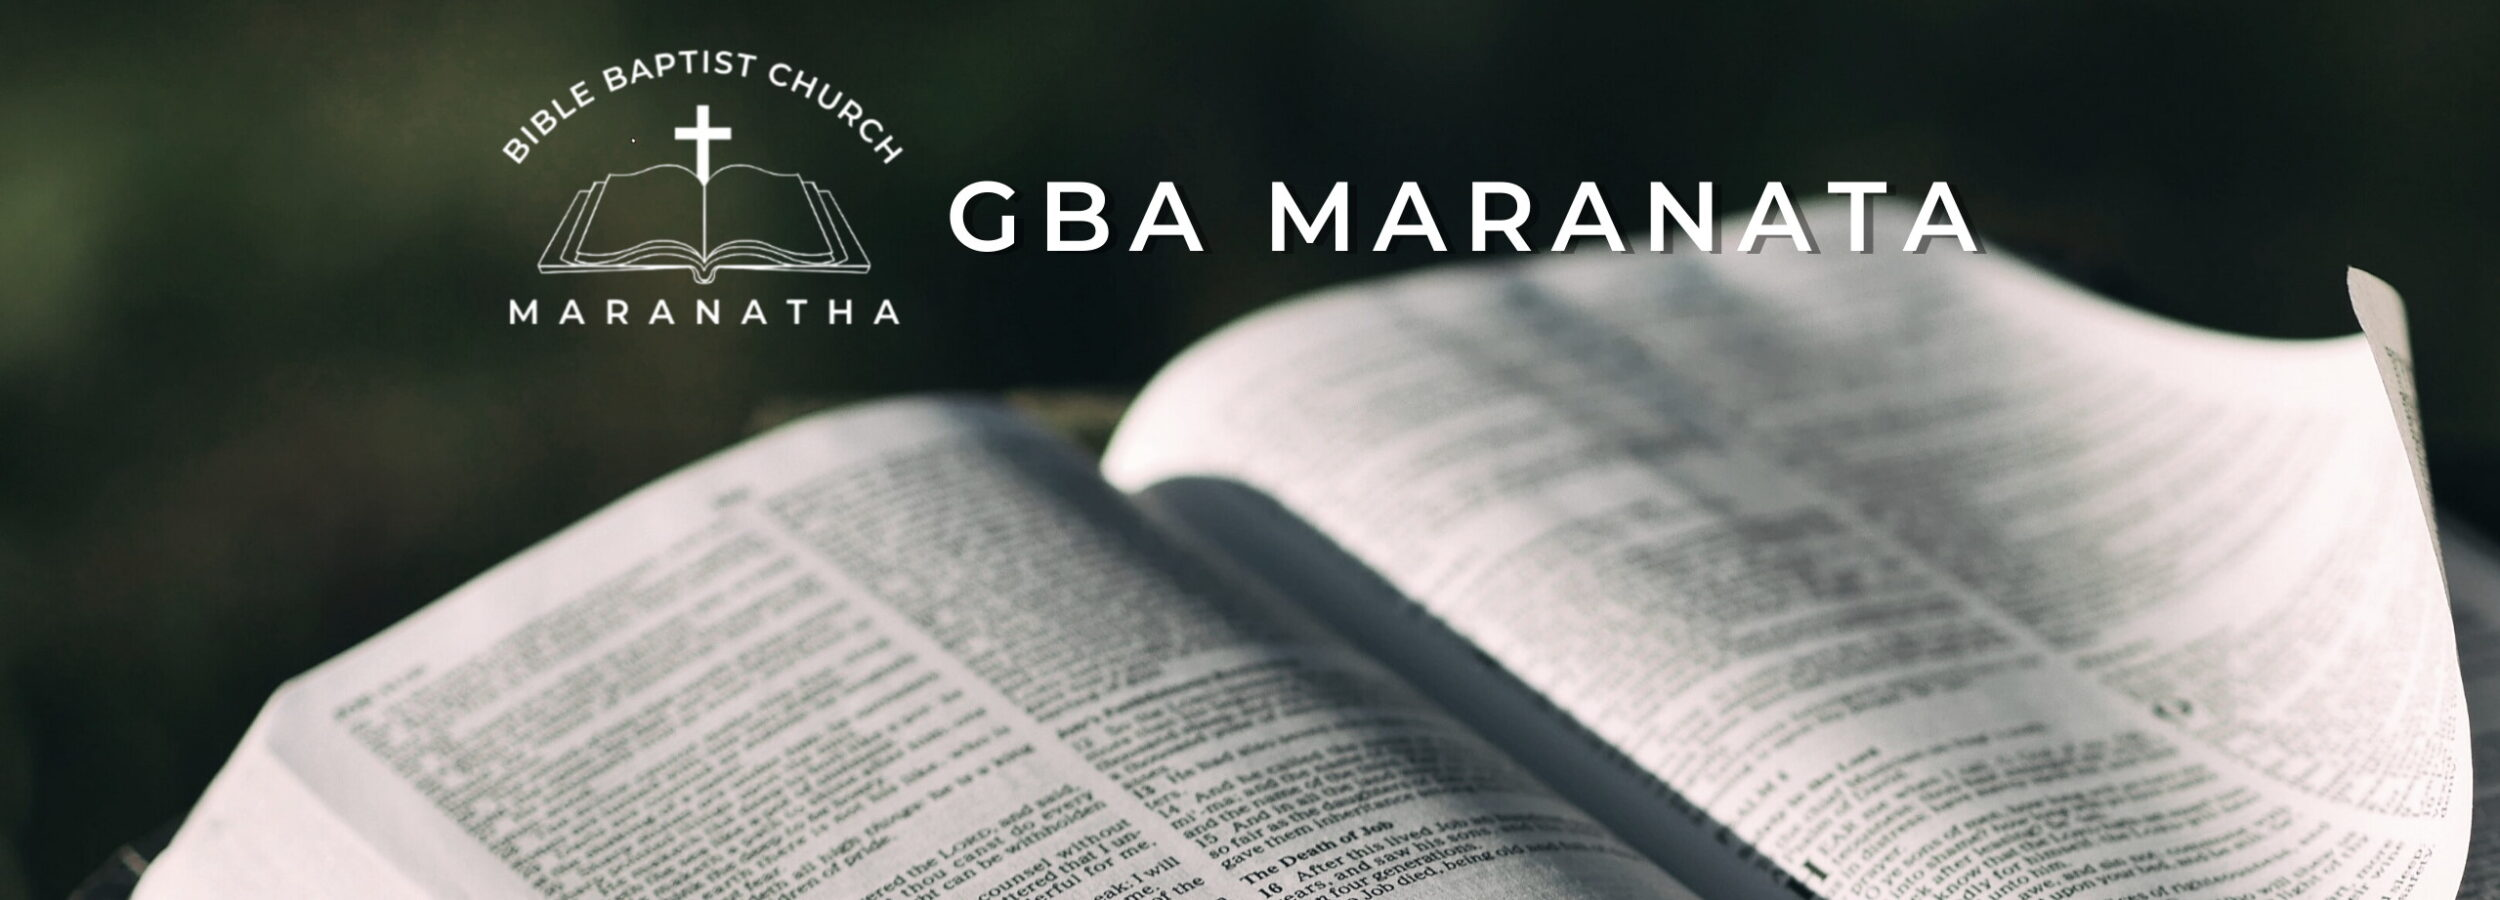 Gereja Baptis Alkitabiah - MARANATA - Bible Baptists Church